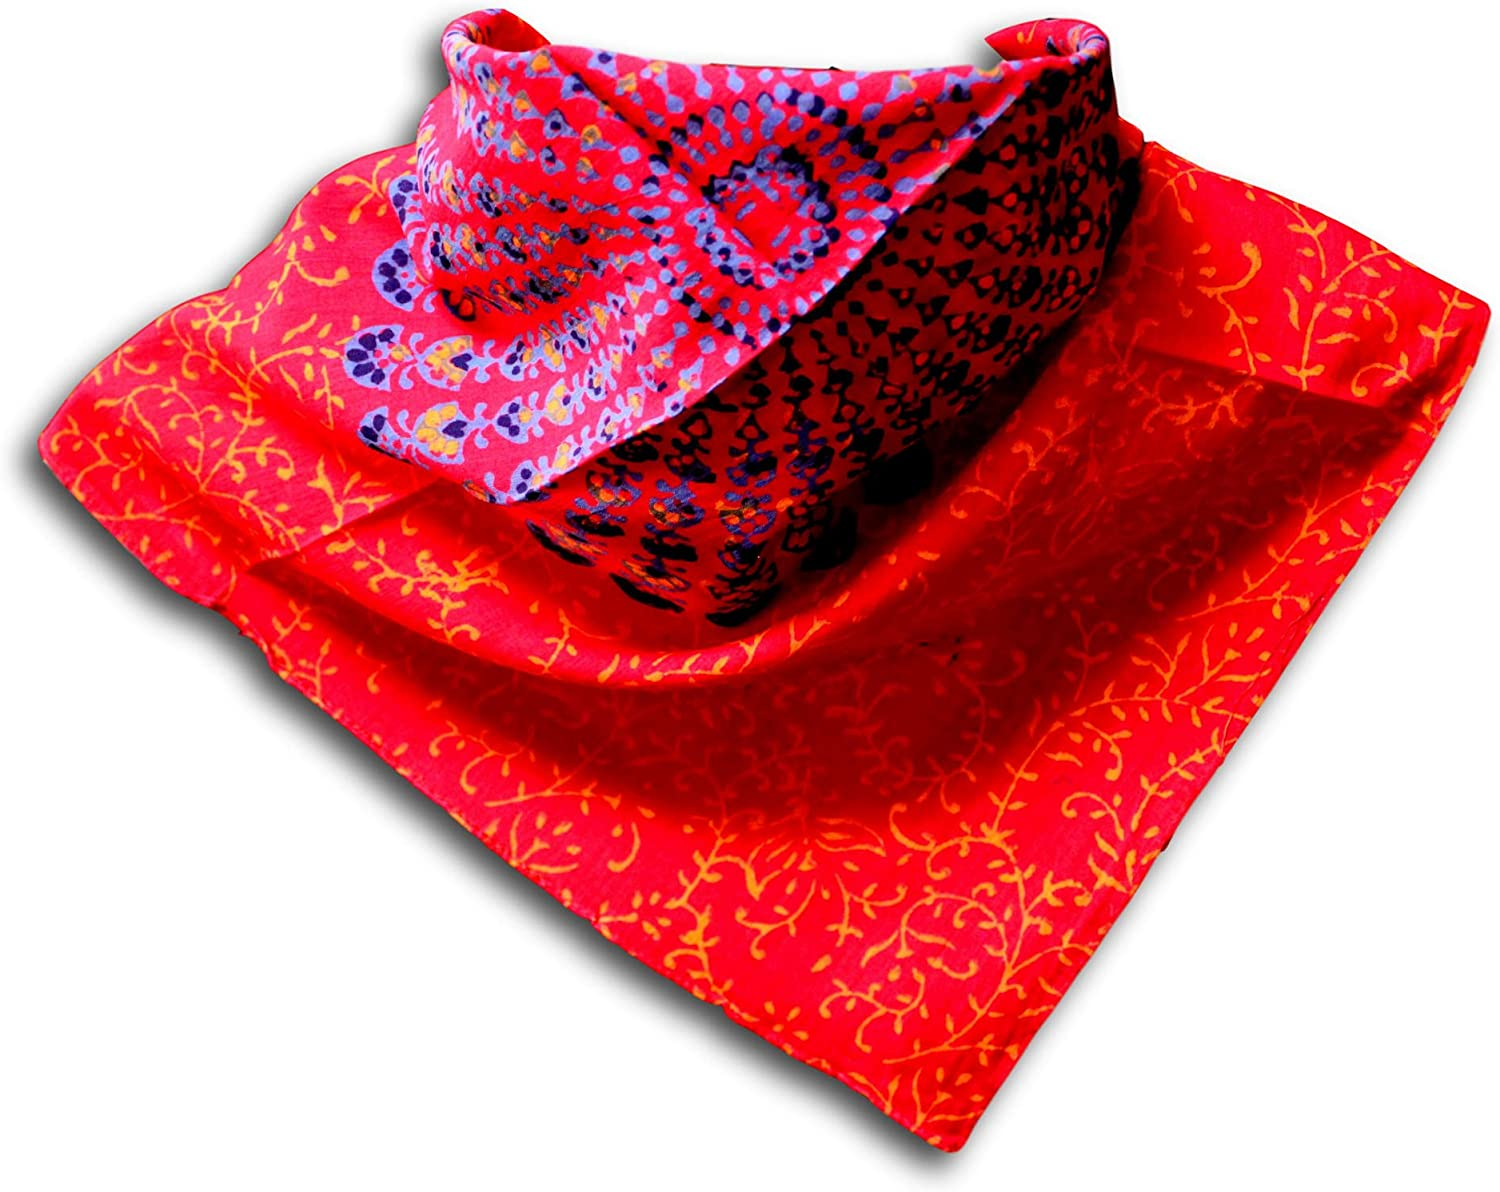 Large Cotton Scarfs for Women Lightweight Soft Sheer Neck Scarf, Head Scarf, Block Print Sanganer Summer Floral Scarf, Bandanas for Women, Handmade Red Blue Fashion Scarf Square Shawl Stole Wrap 21x21